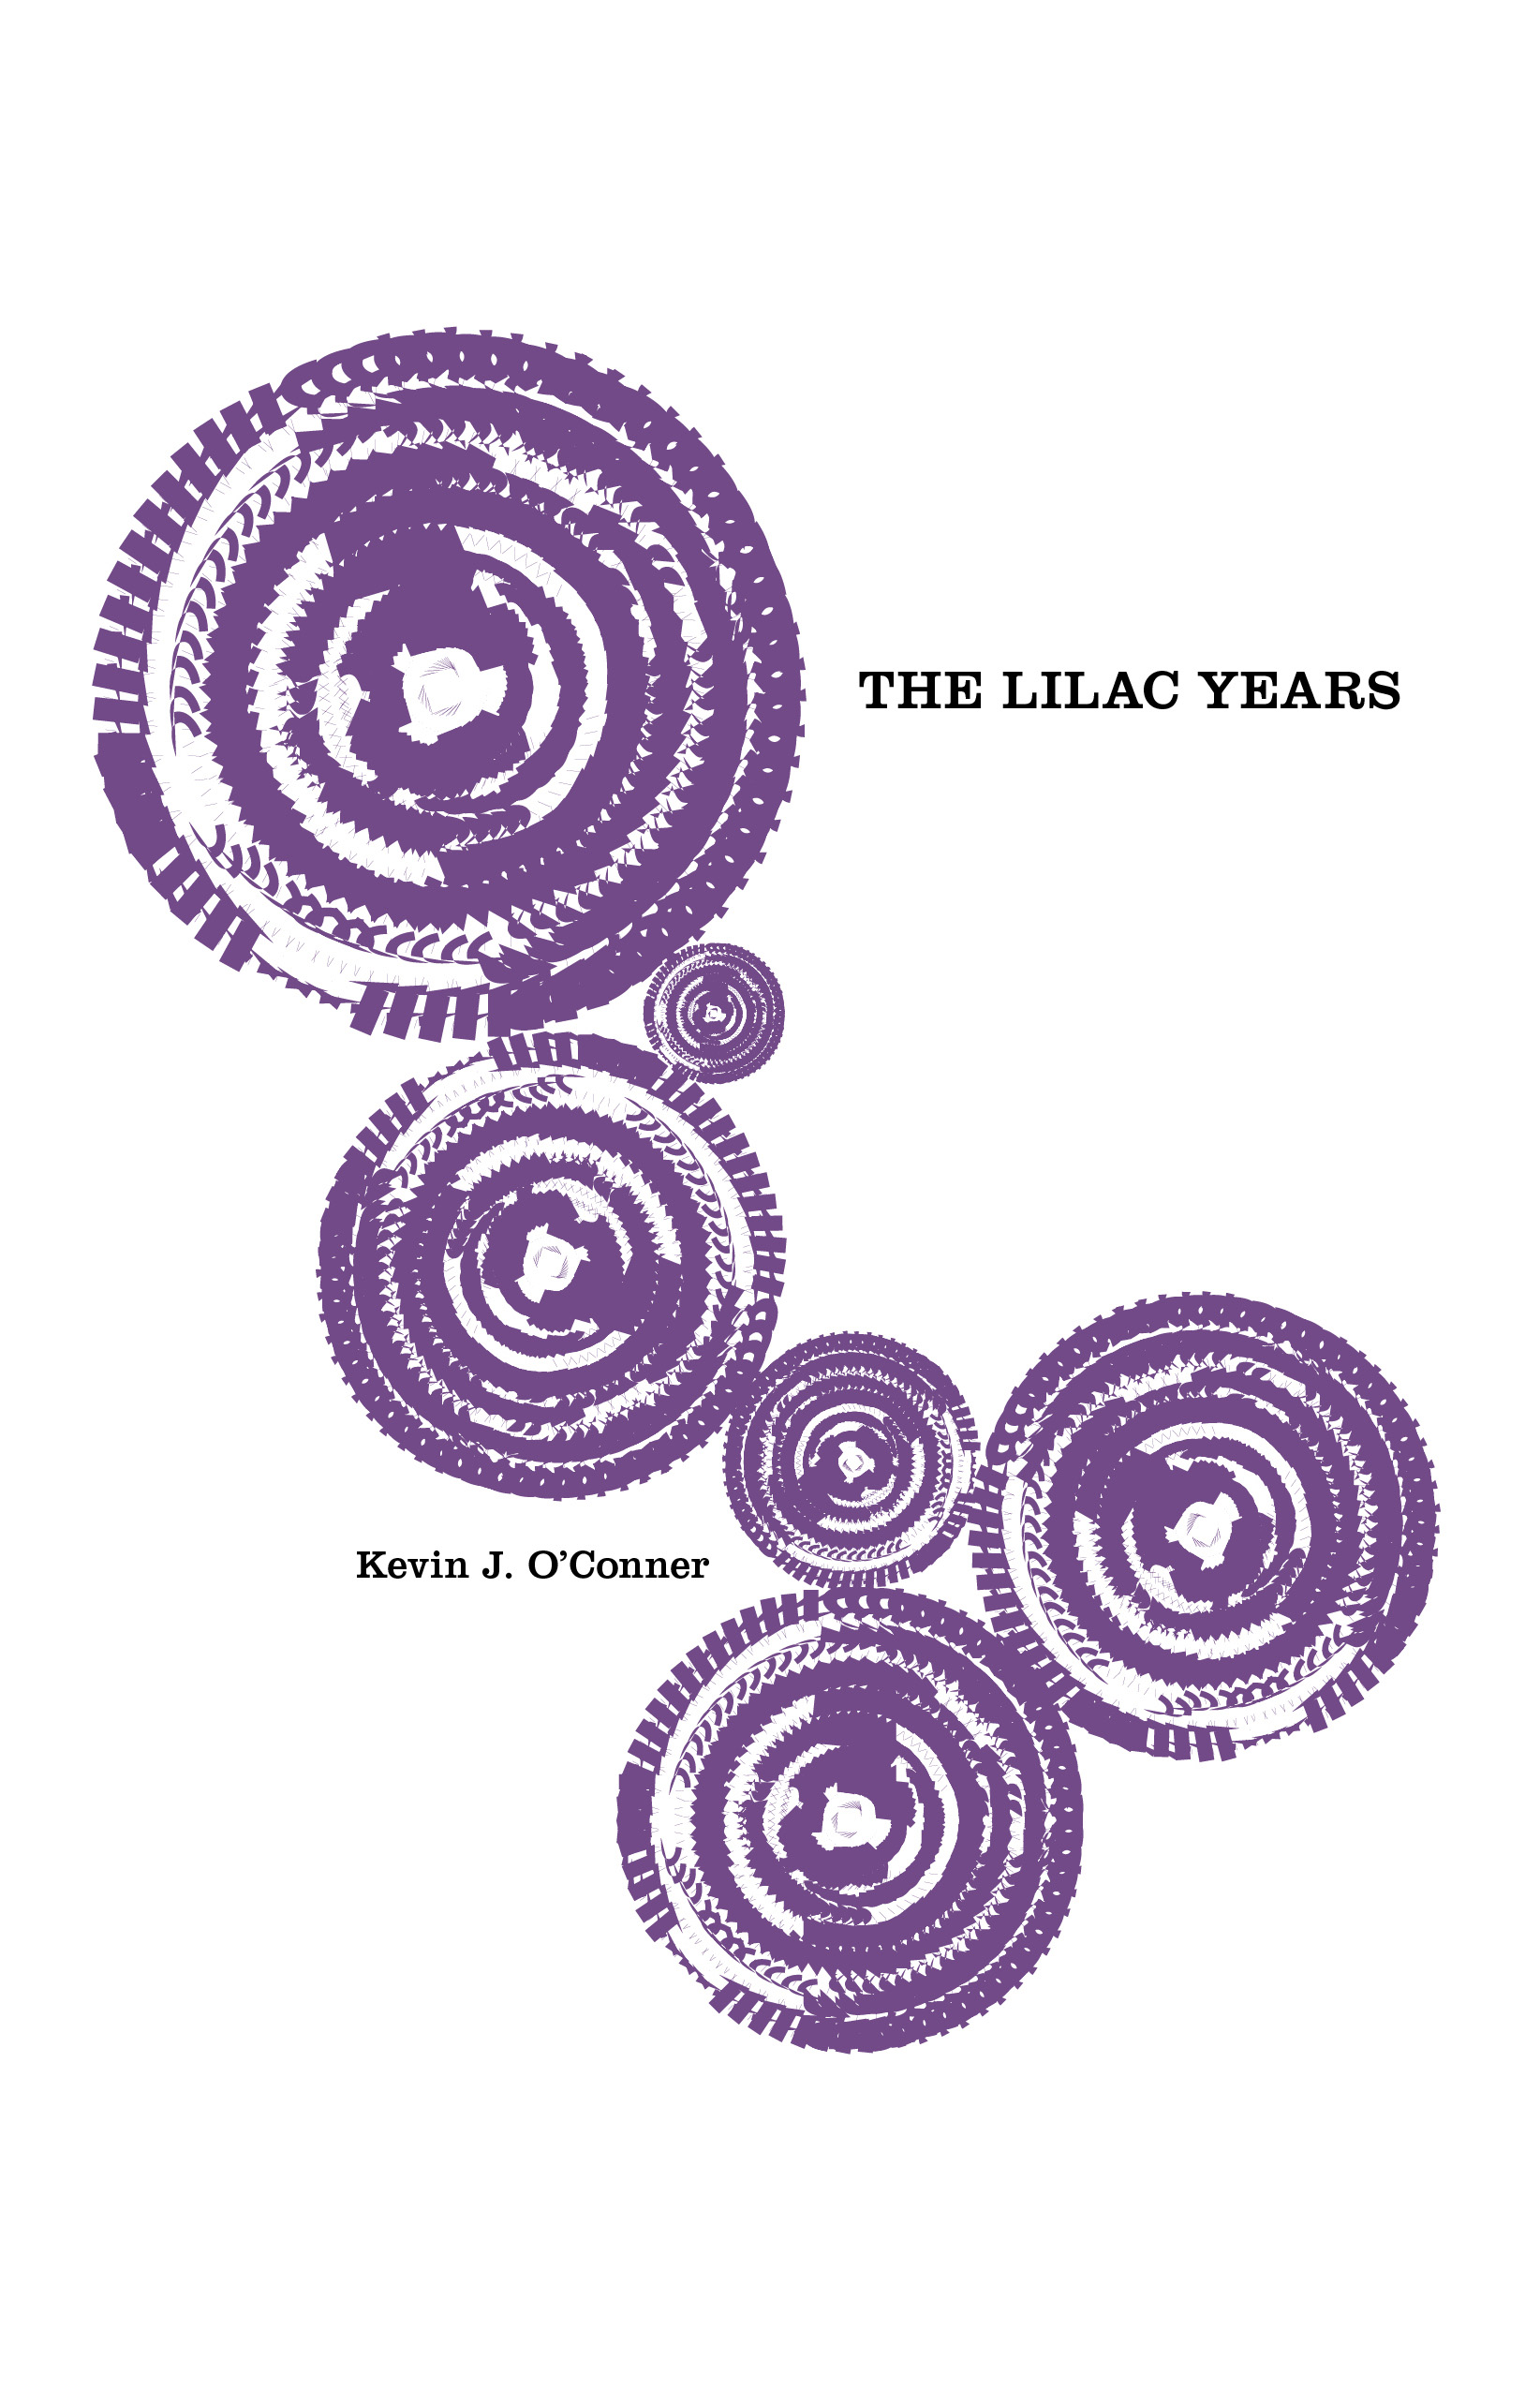 The Lilac Years—new cover draft